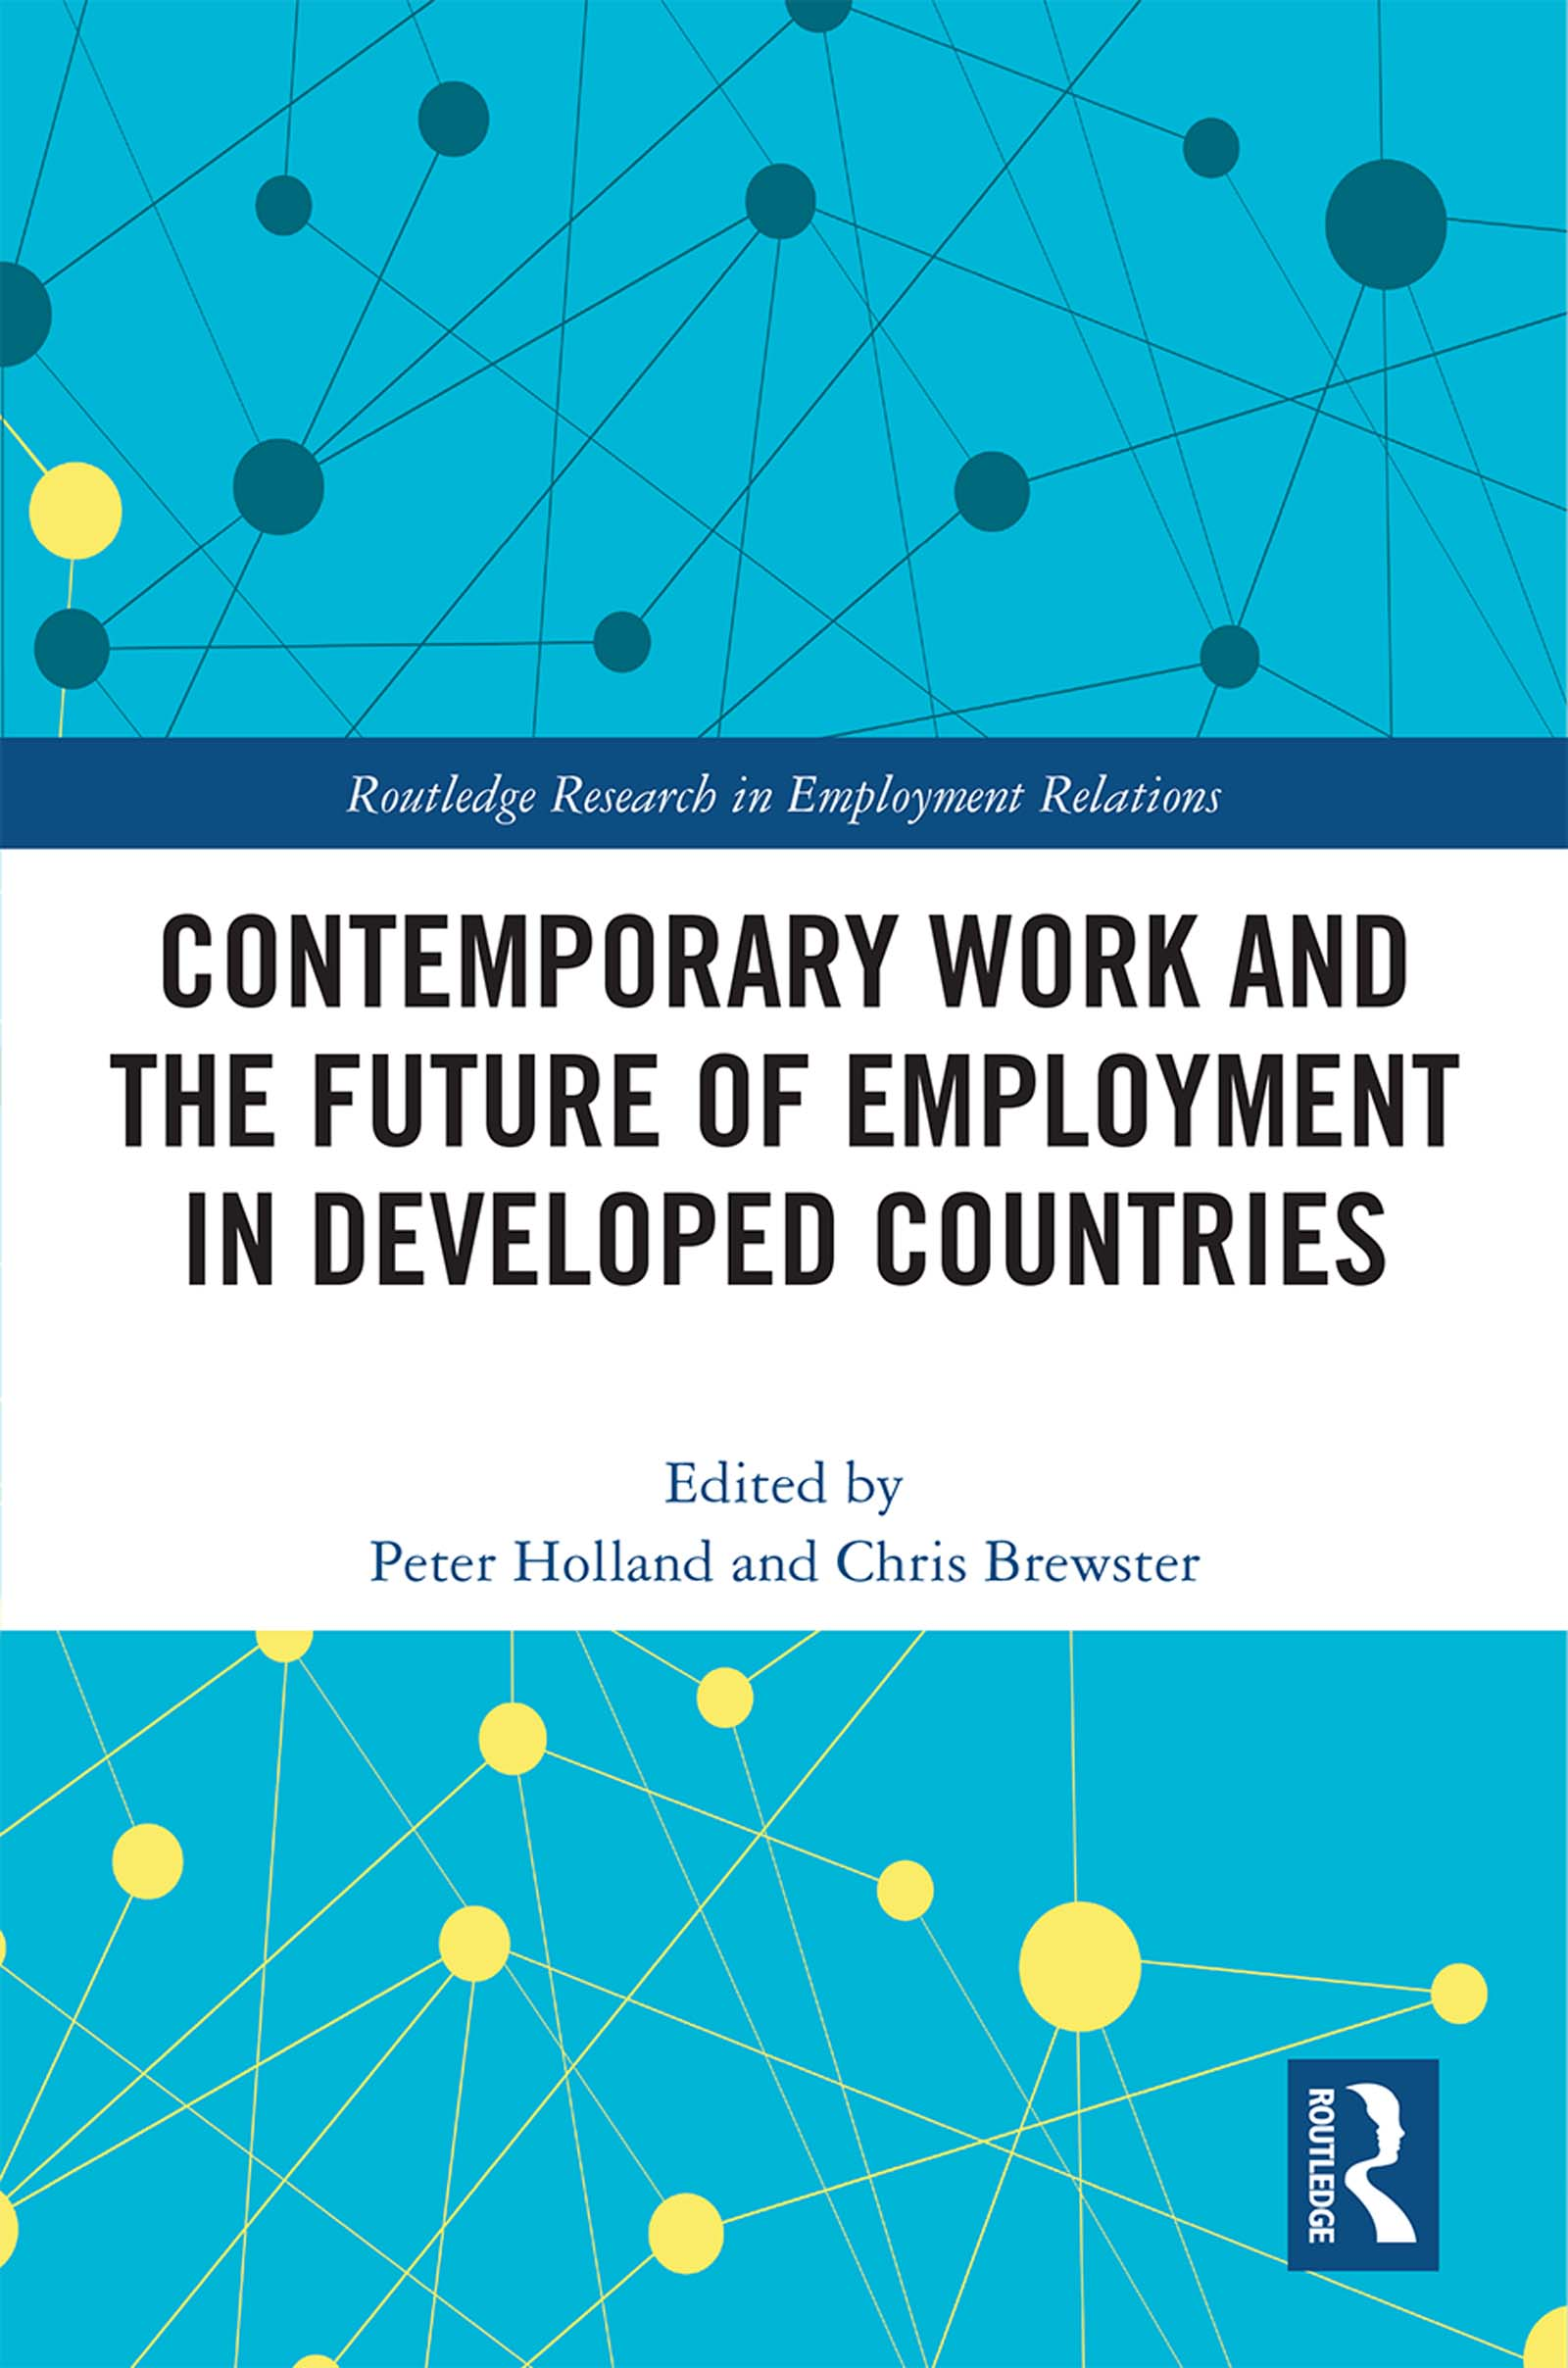 Contemporary Work and the Future of Employment in Developed Countries book cover